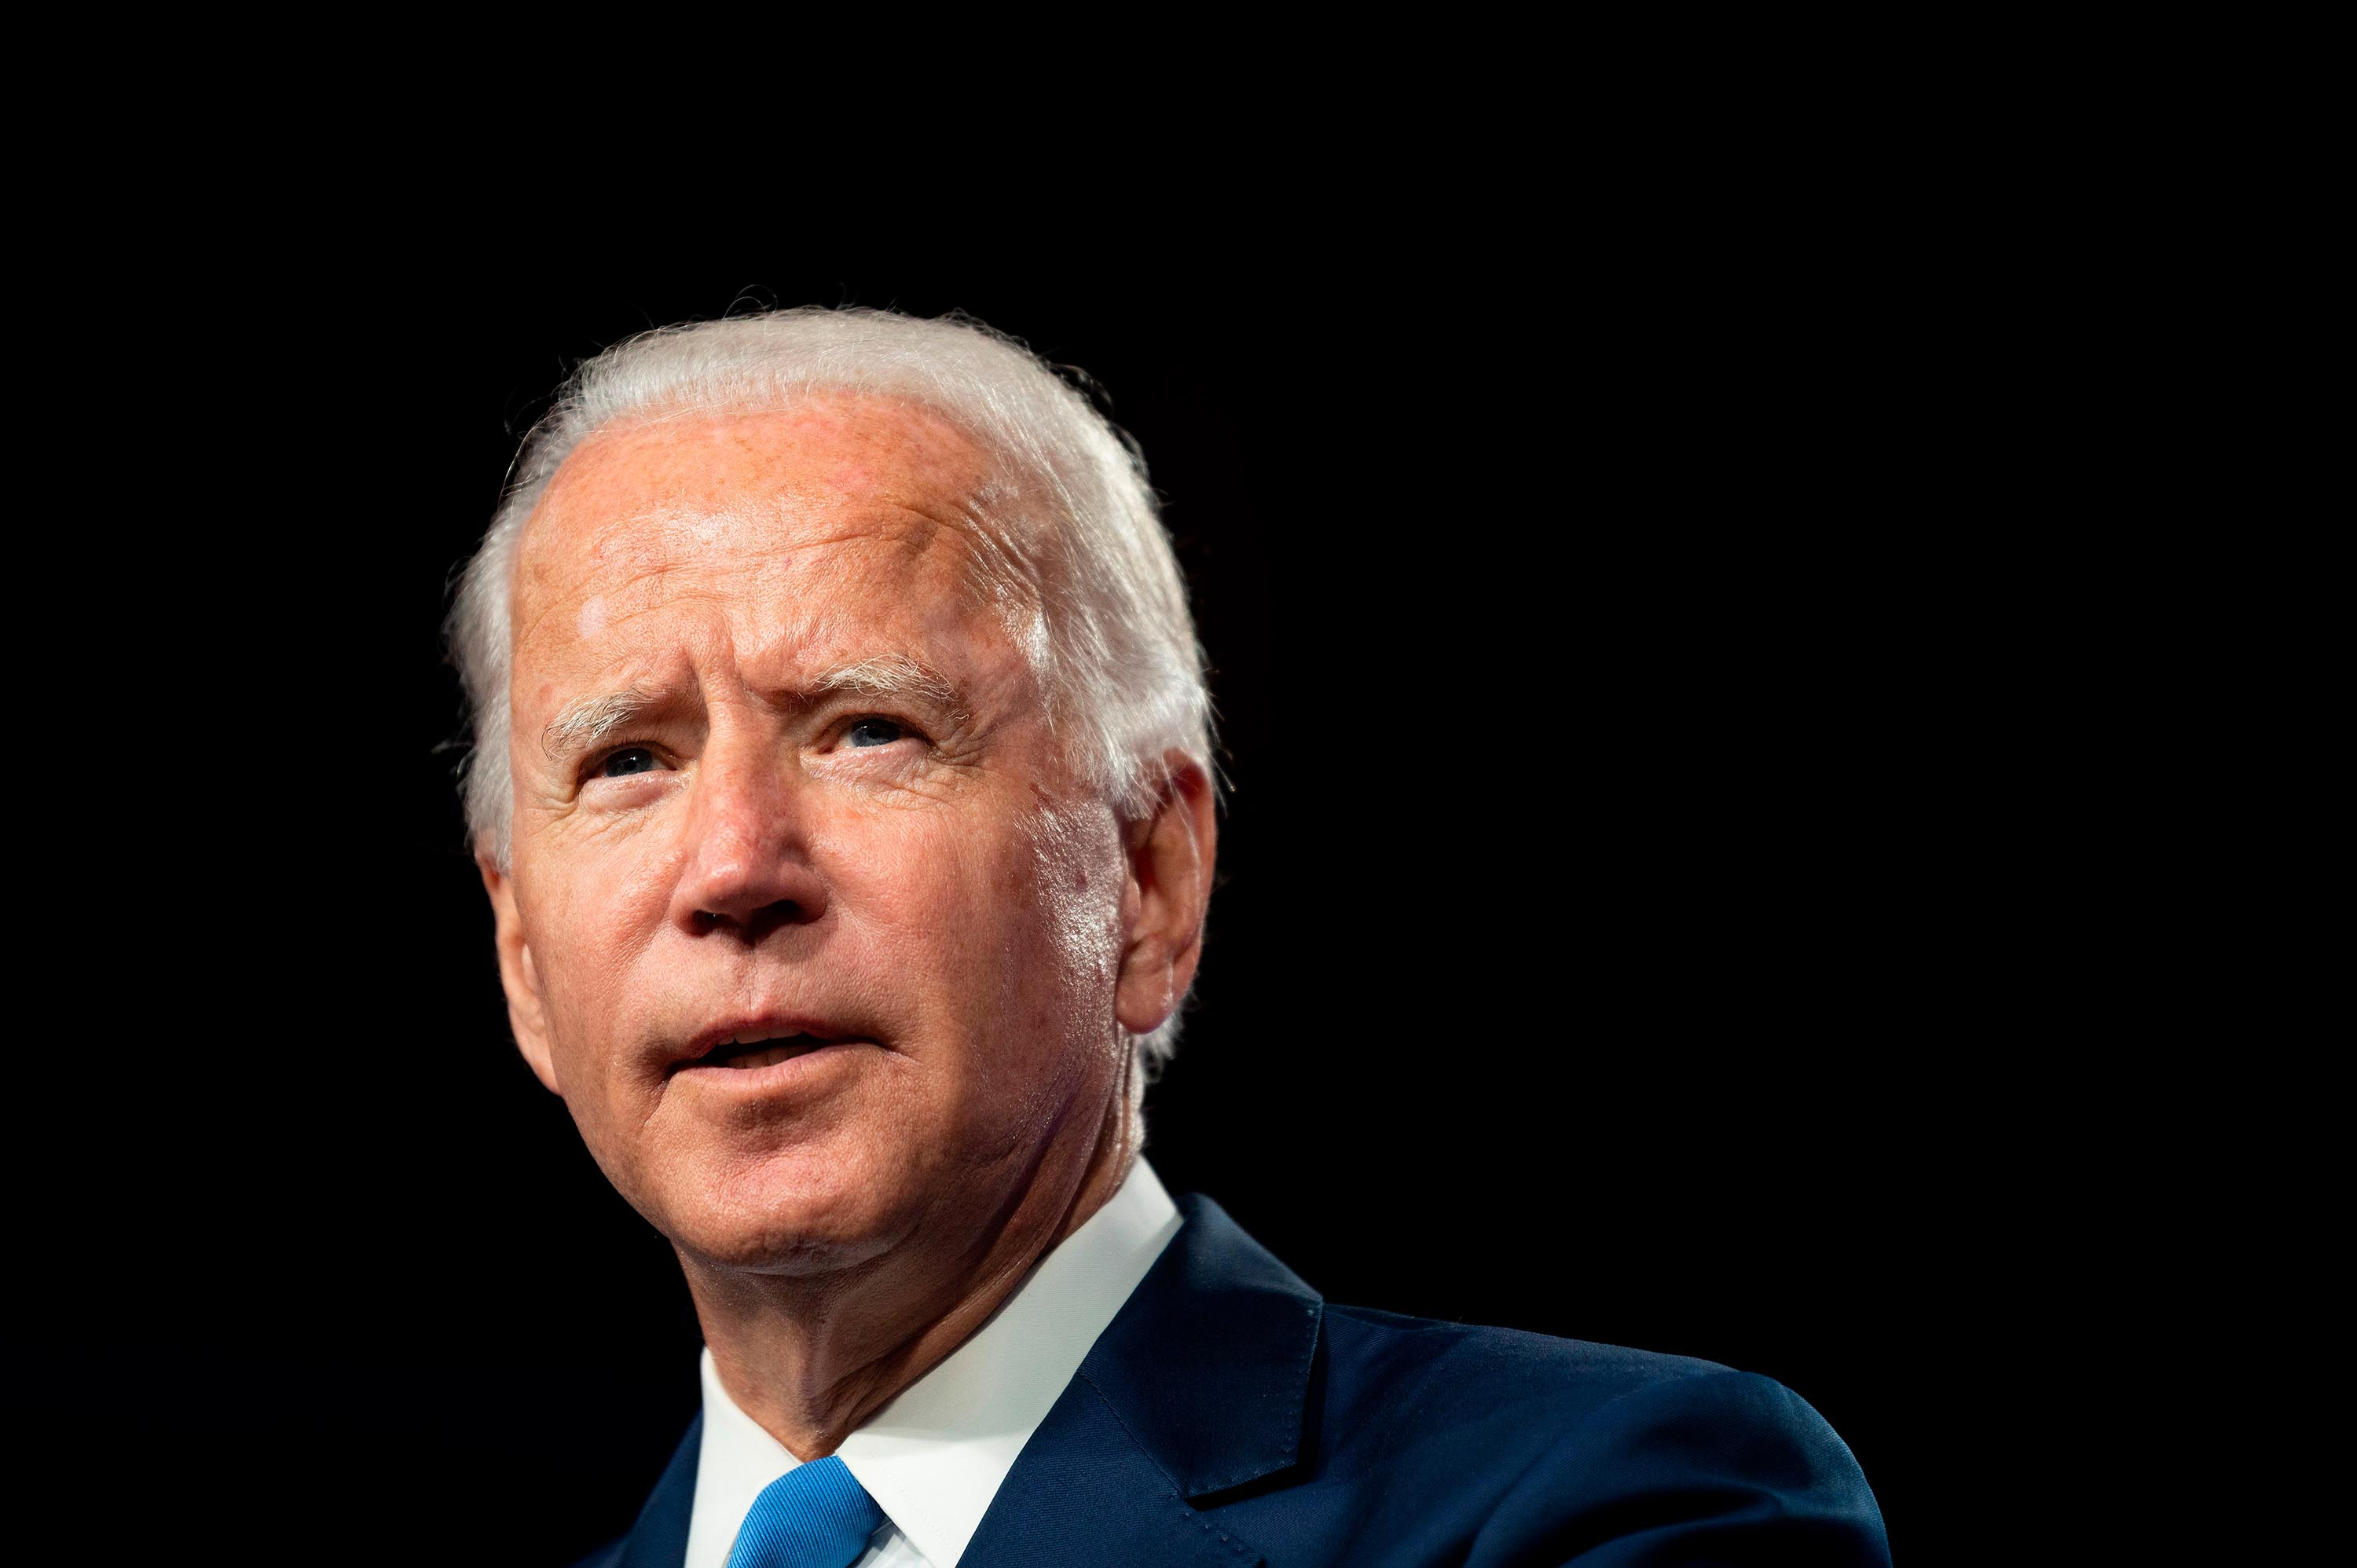 Biden Says Trump S Climate Denialism His Disdain For Science And Facts Is Unconscionable Wgow Am